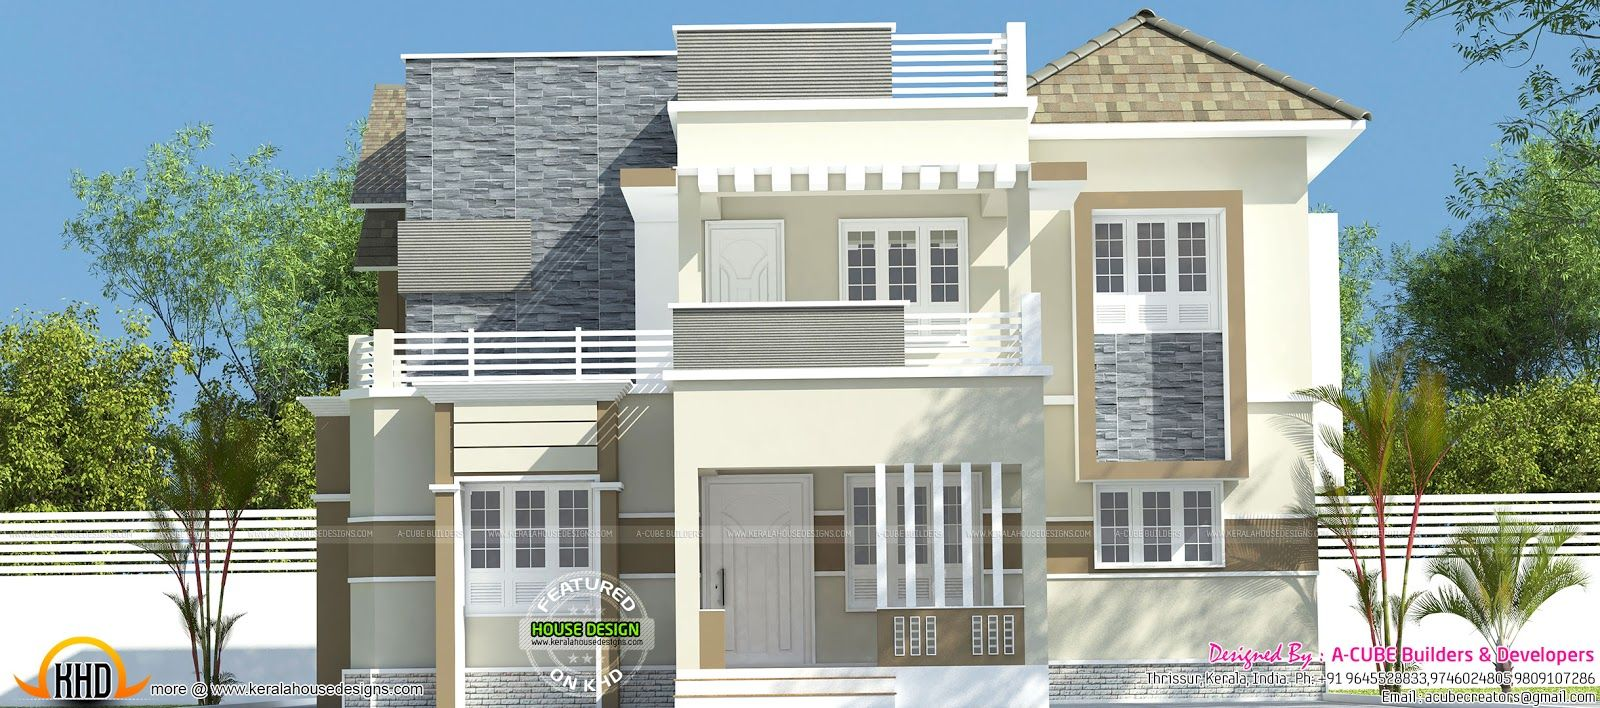 4 Bedroom Mixed Roof Home Part - 34: 4 Bedroom, 2106 Square Feet Mixed Roof House Architecture Plan By A CUBE  Creators, Thrissur, Kerala.